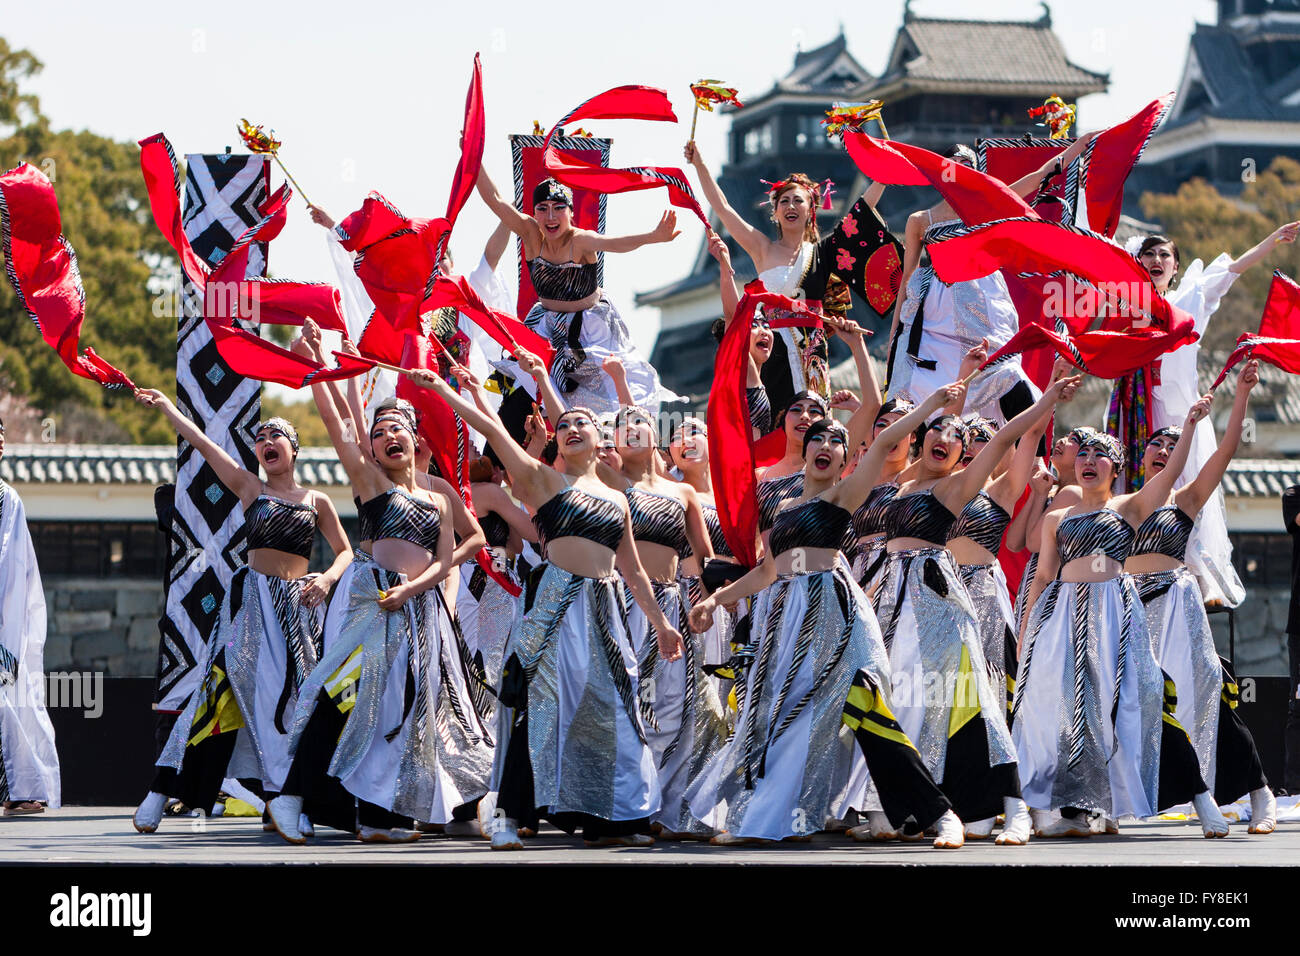 Japanese yosakoi festival, young women dance troupe gathered together on stage , arms outstretched and holding red - Stock Image